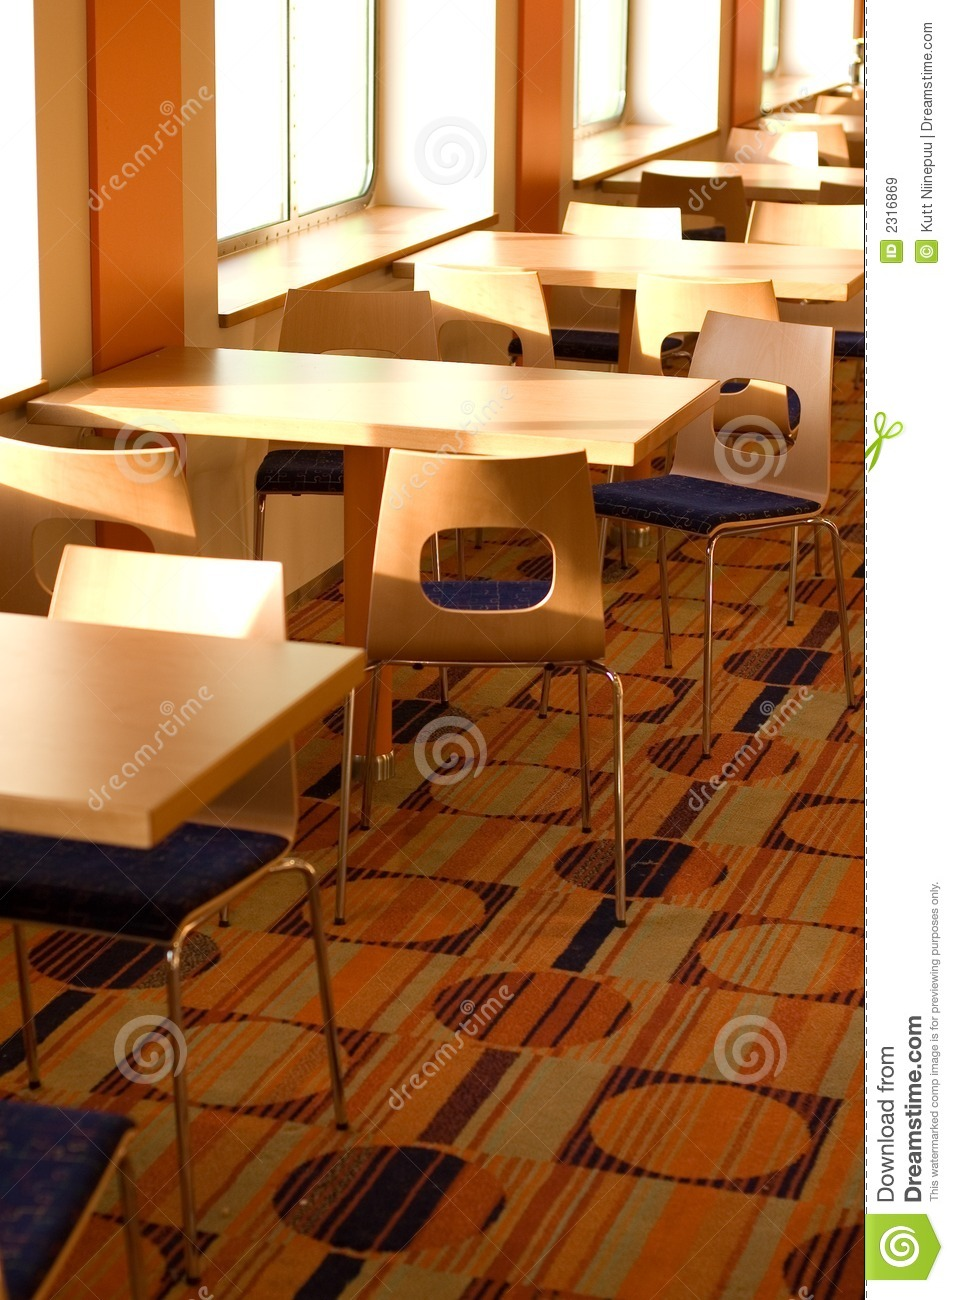 cafe table and chairs stock image image of interior. Black Bedroom Furniture Sets. Home Design Ideas